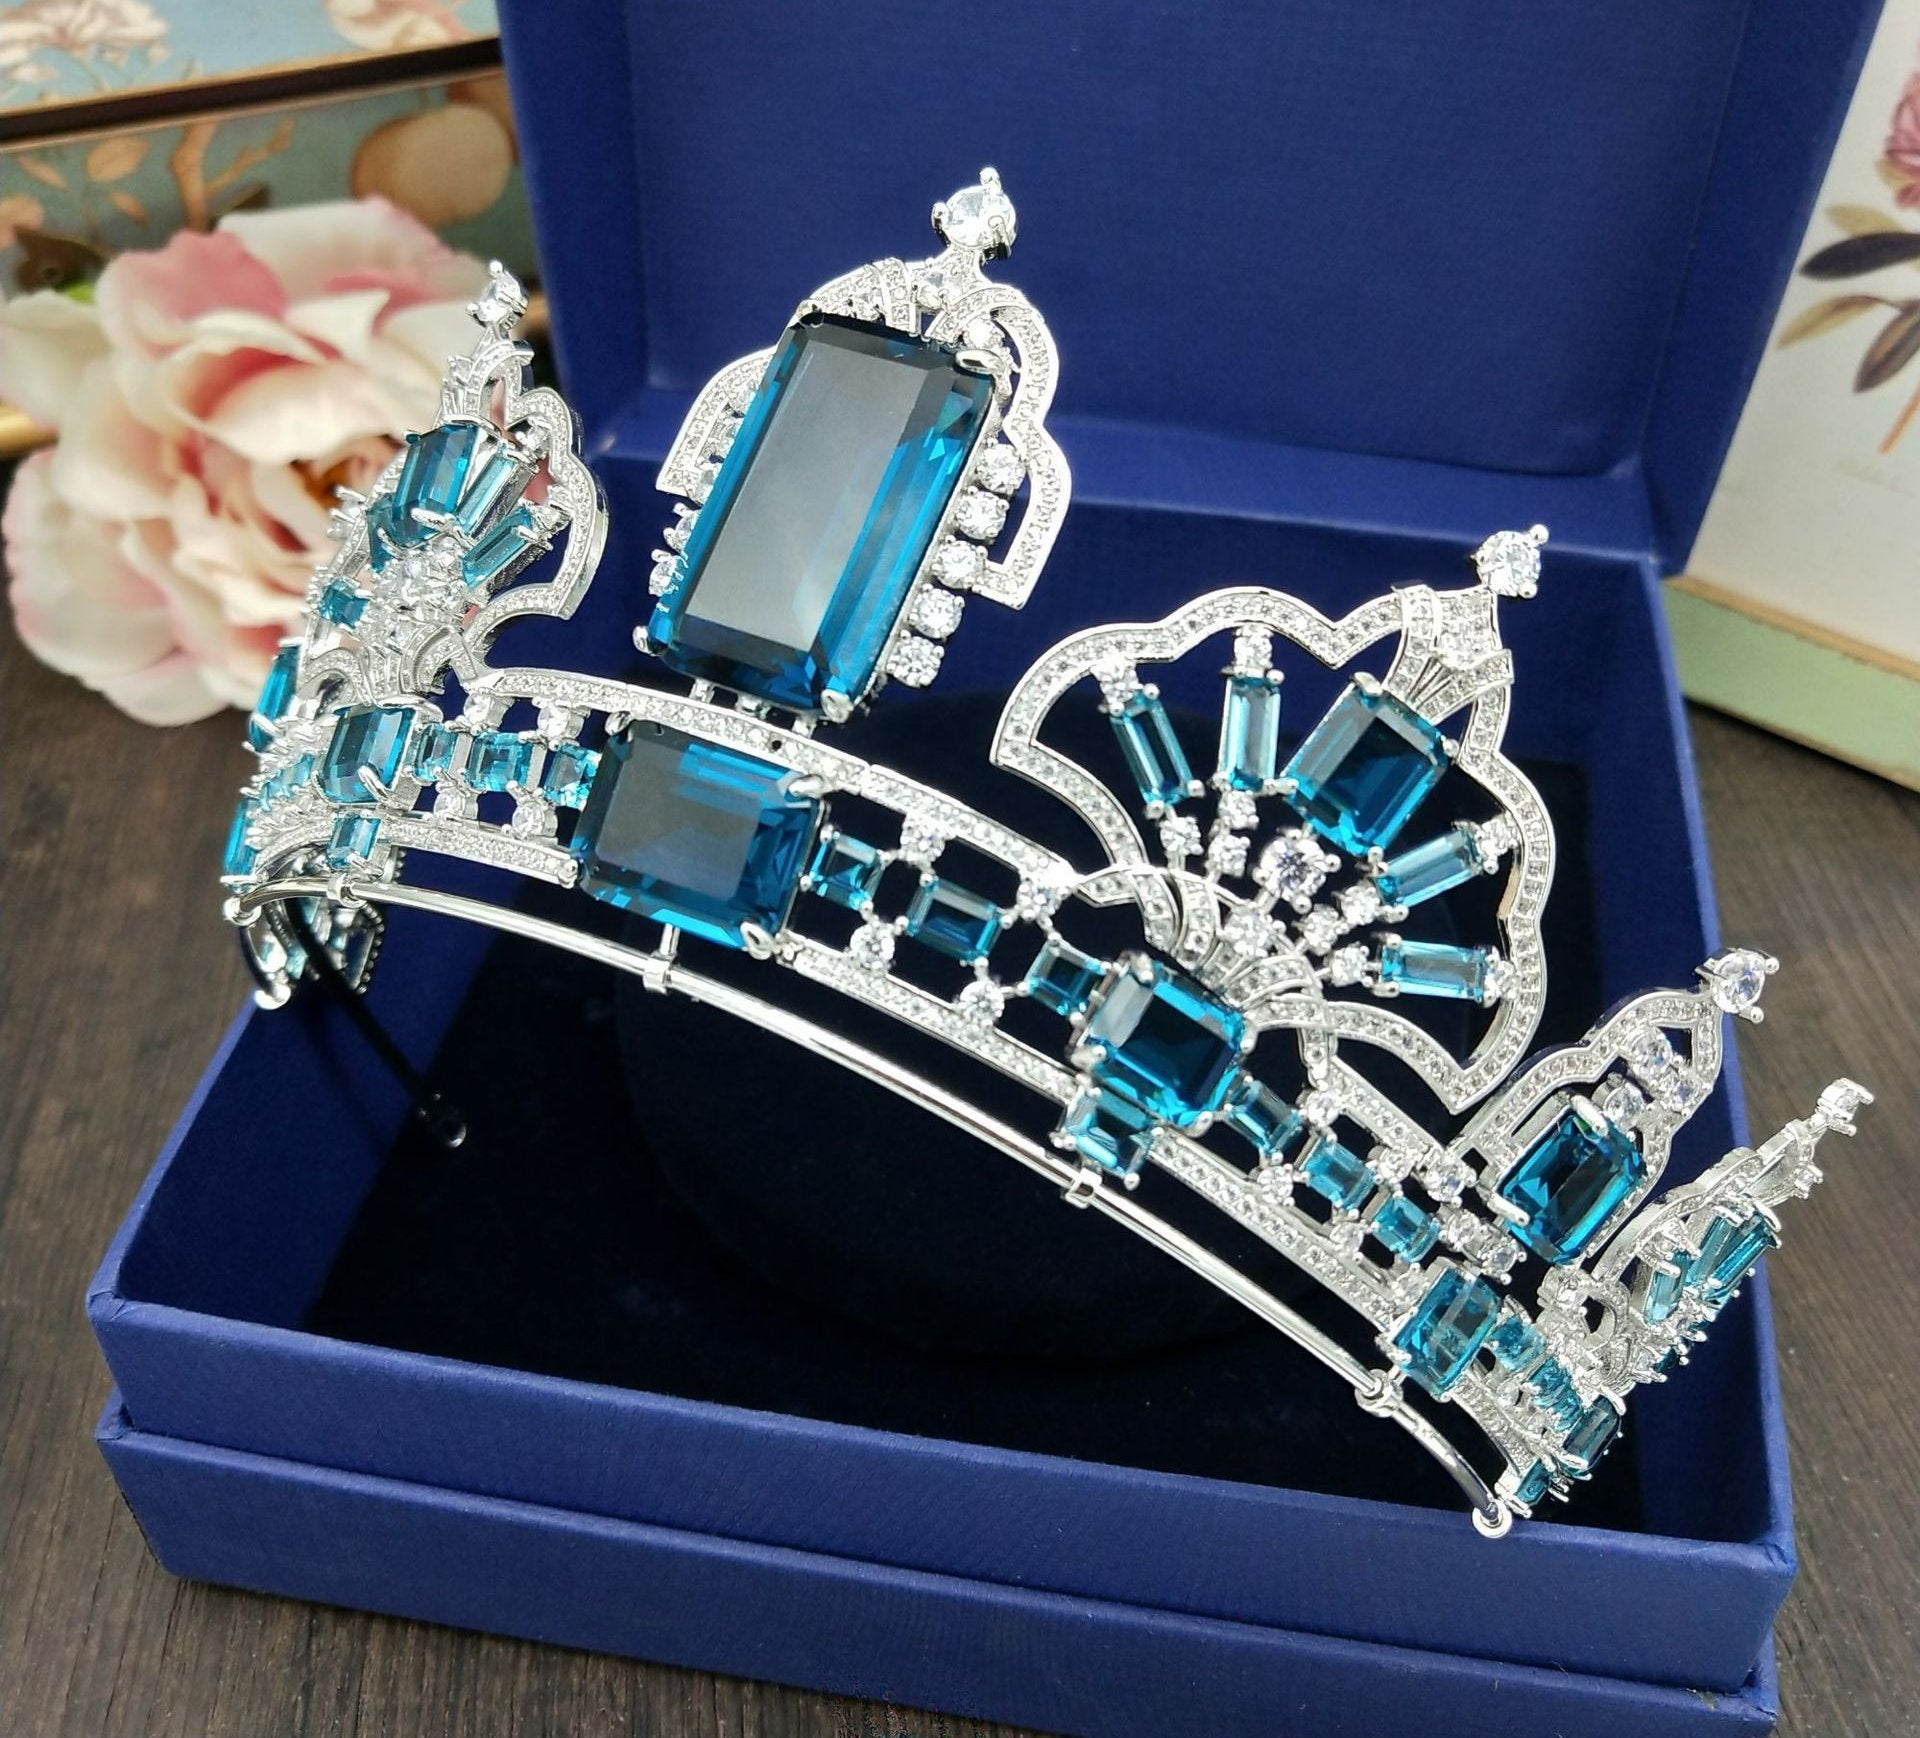 'Azure' Crown Zircon - The Royal Look For Less